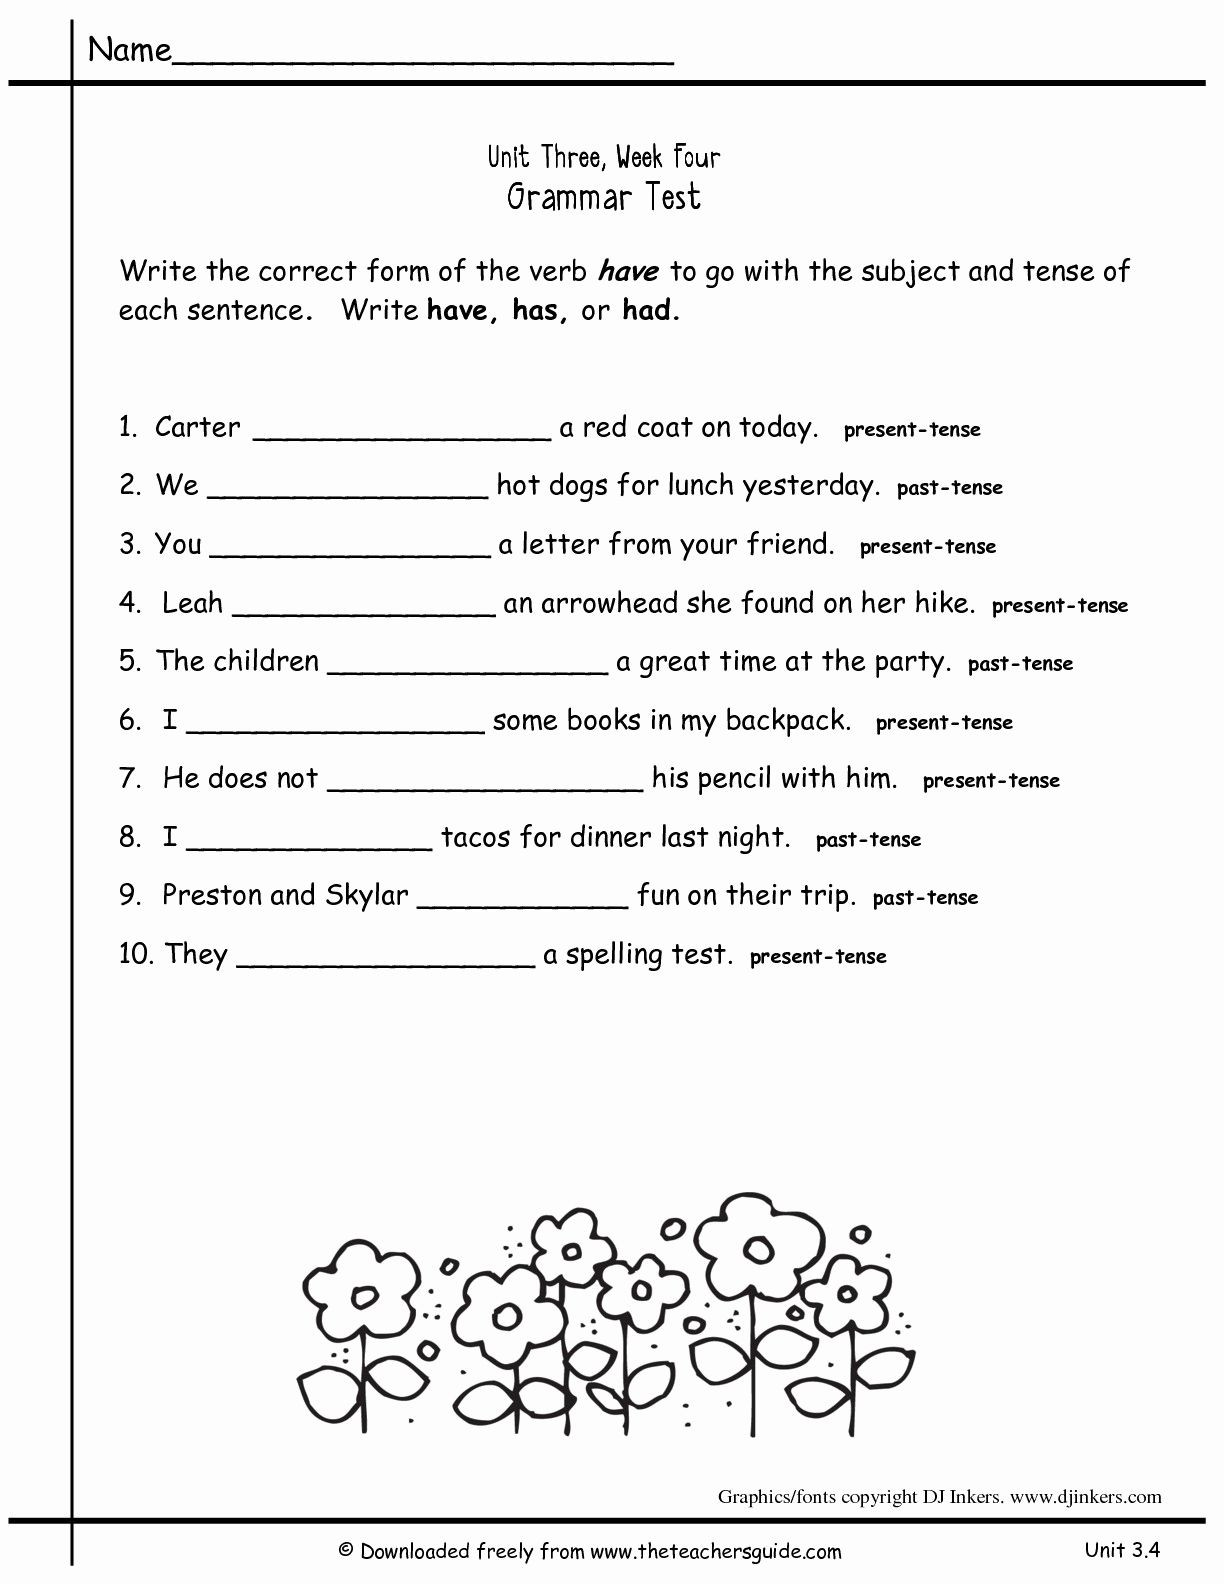 Grammar Worksheets 2nd Grade Printable 2nd Grade Grammar Worksheets Pdf New Worksheets for All